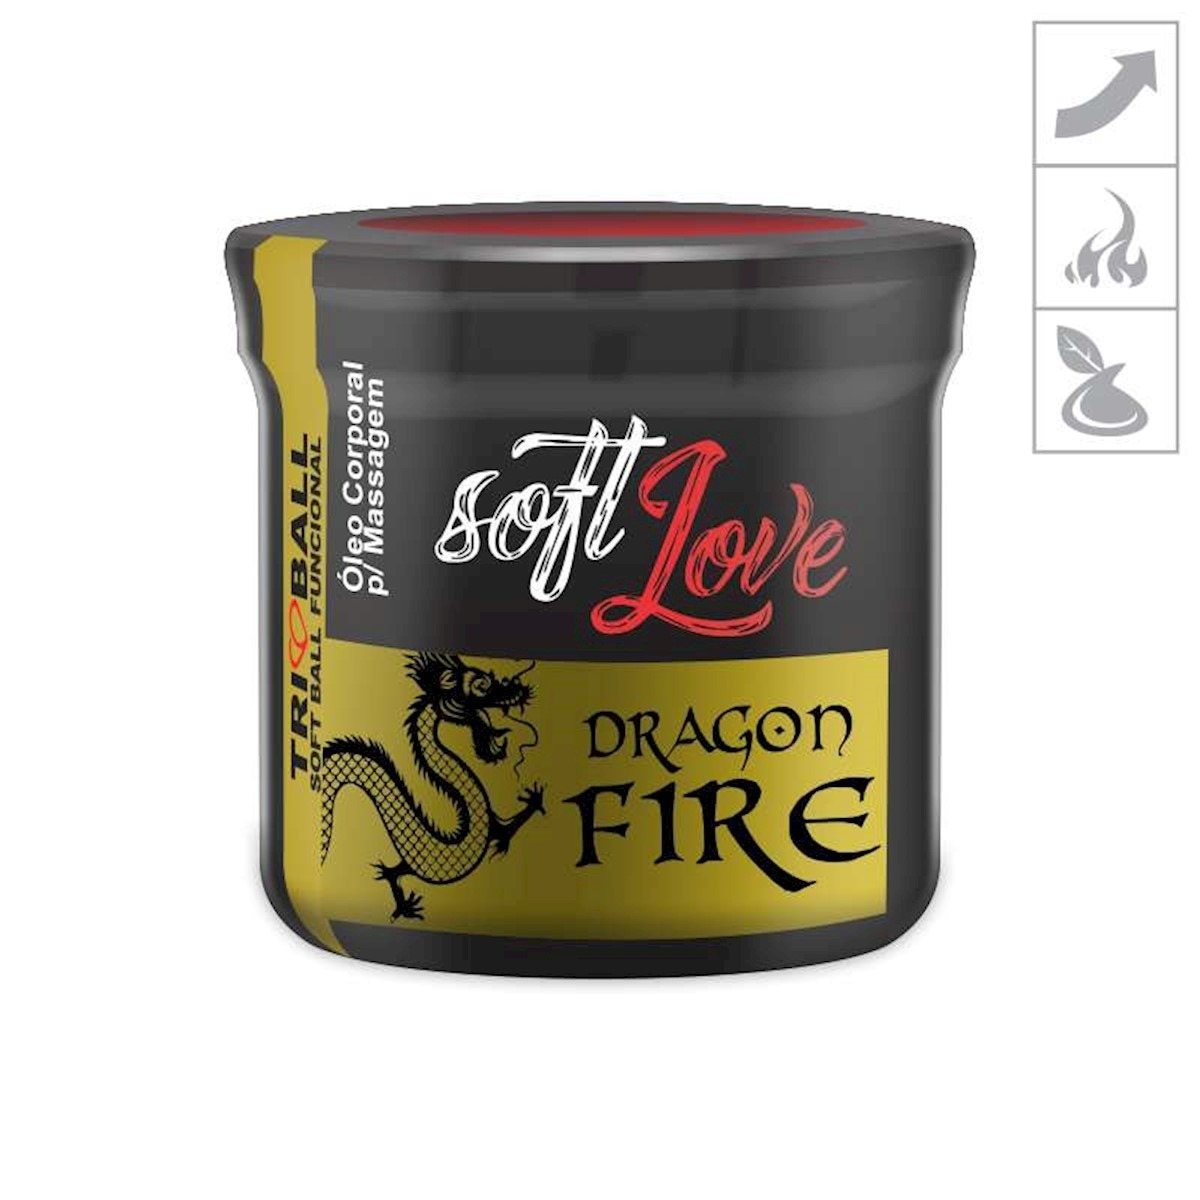 DRAGON FIRESOFT LOVE